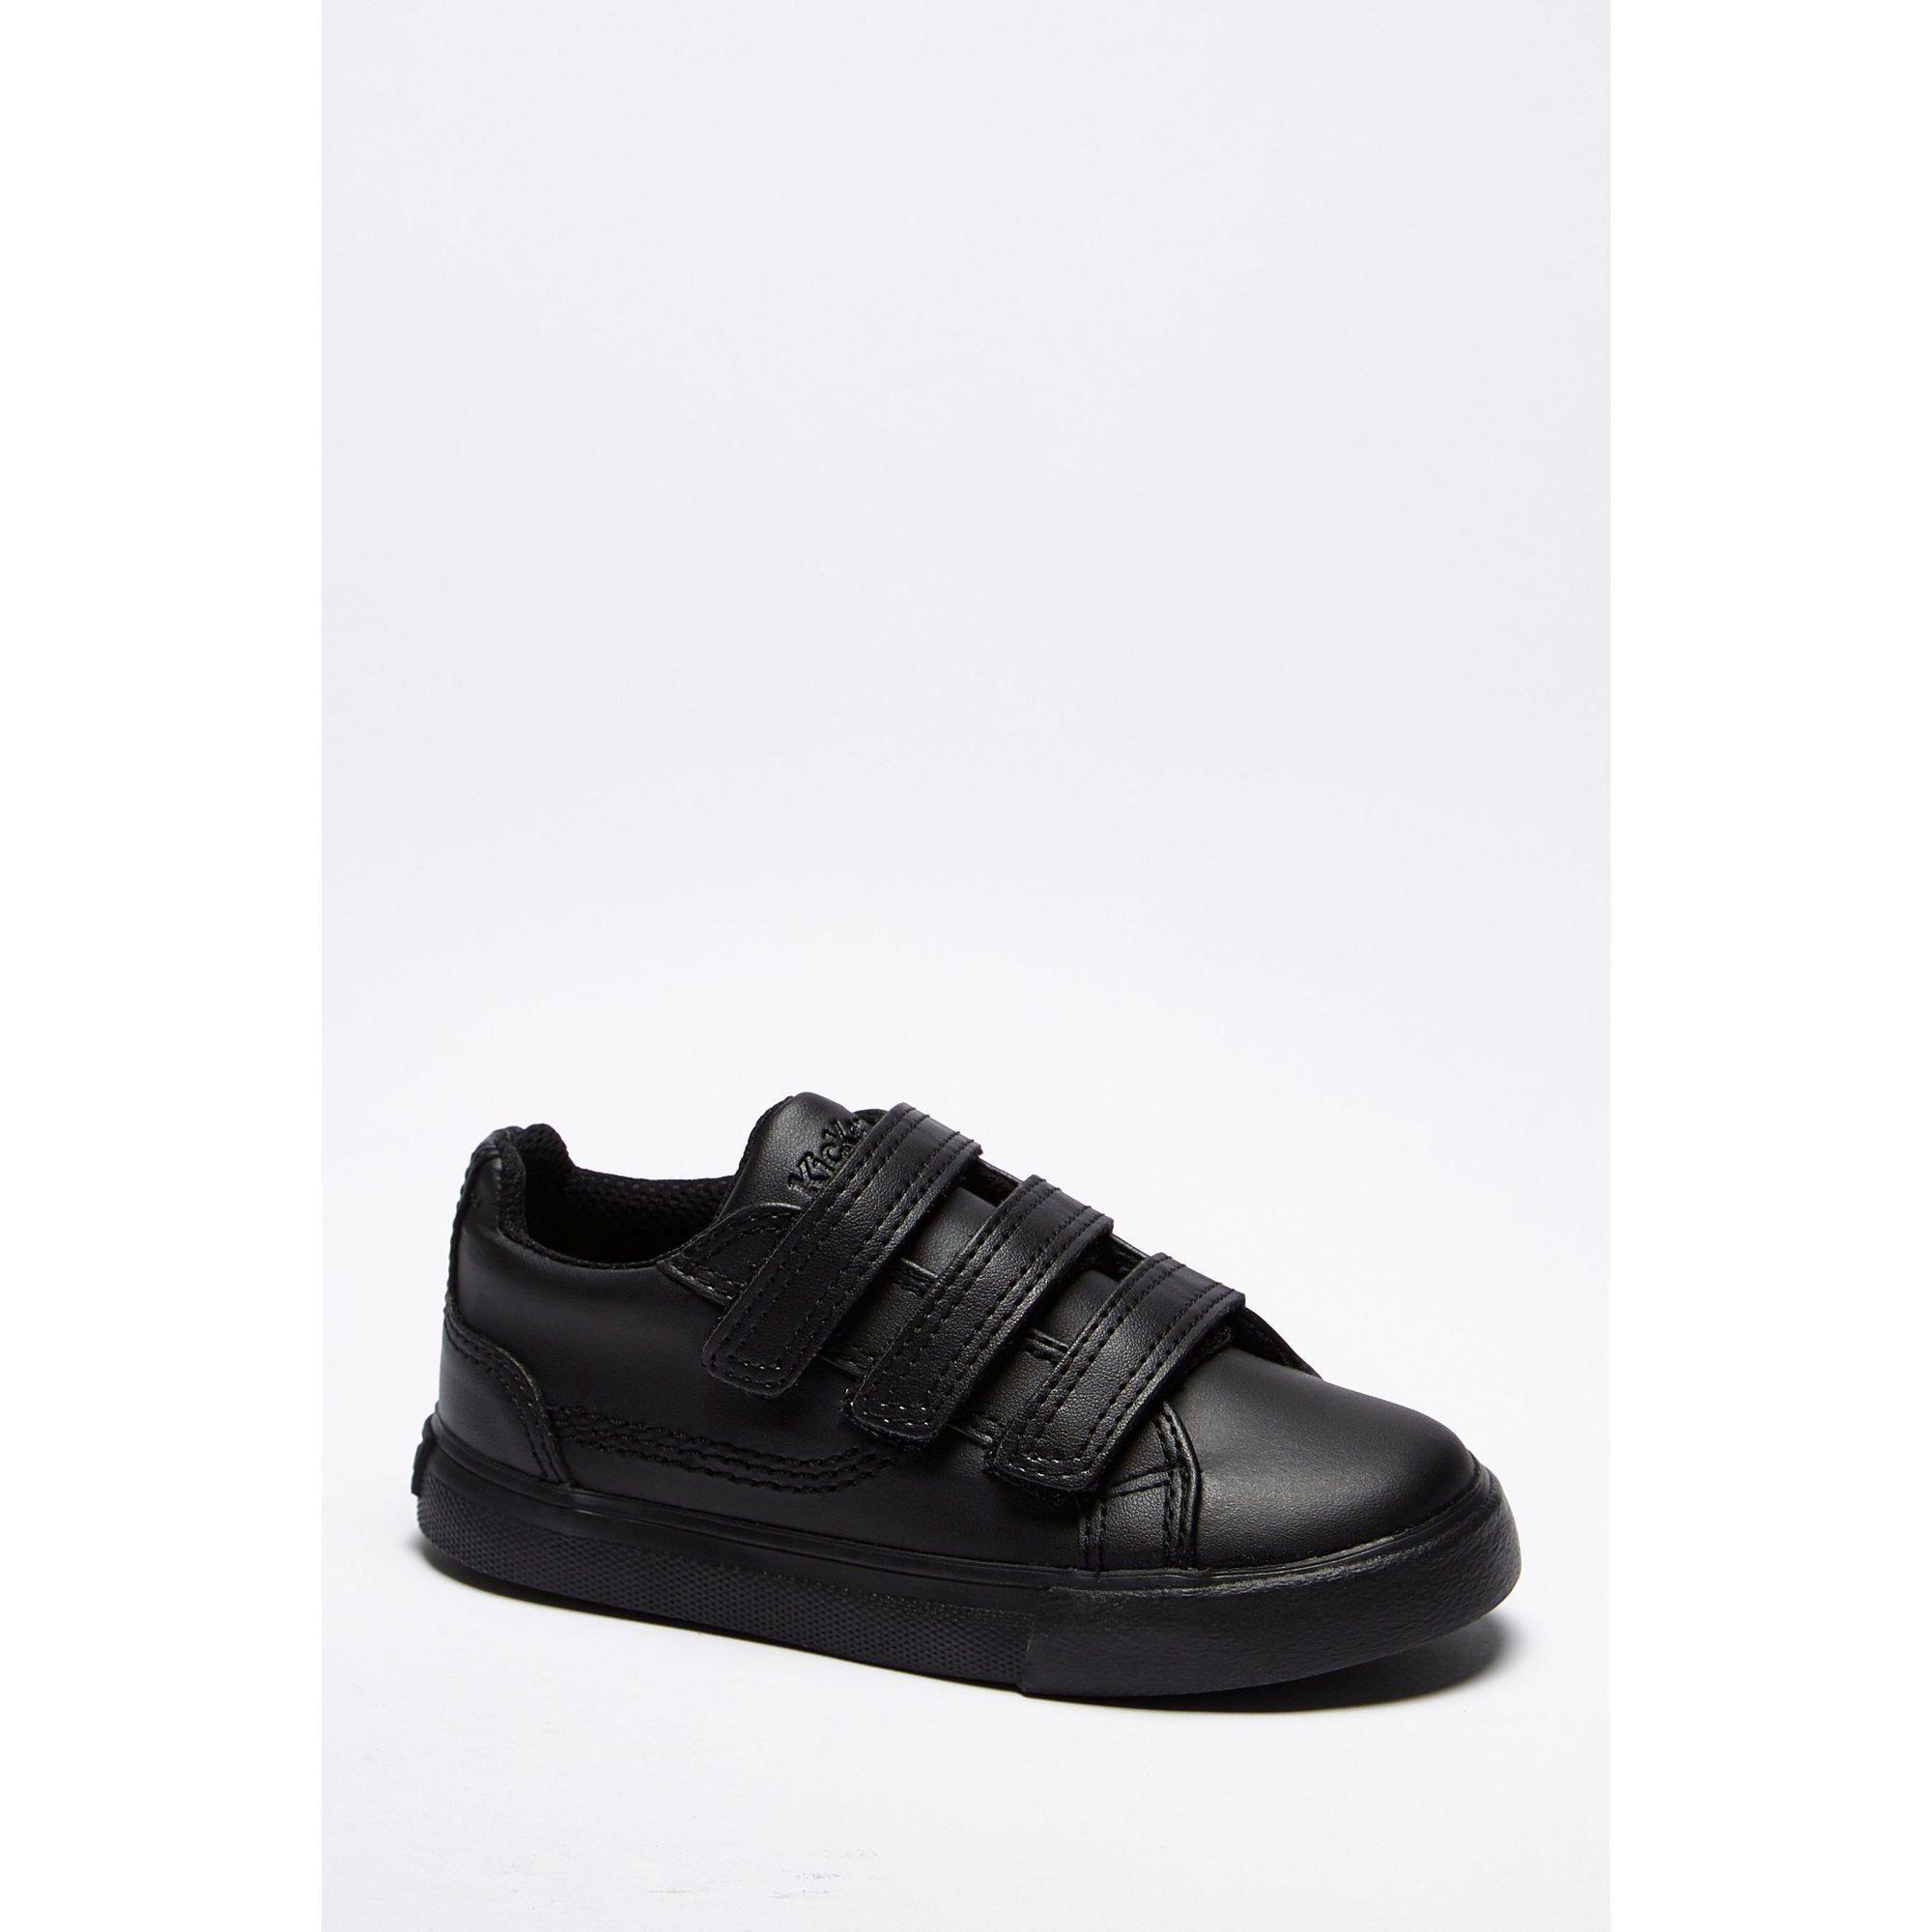 Image of Boys Kickers Tovni Trip Trainers